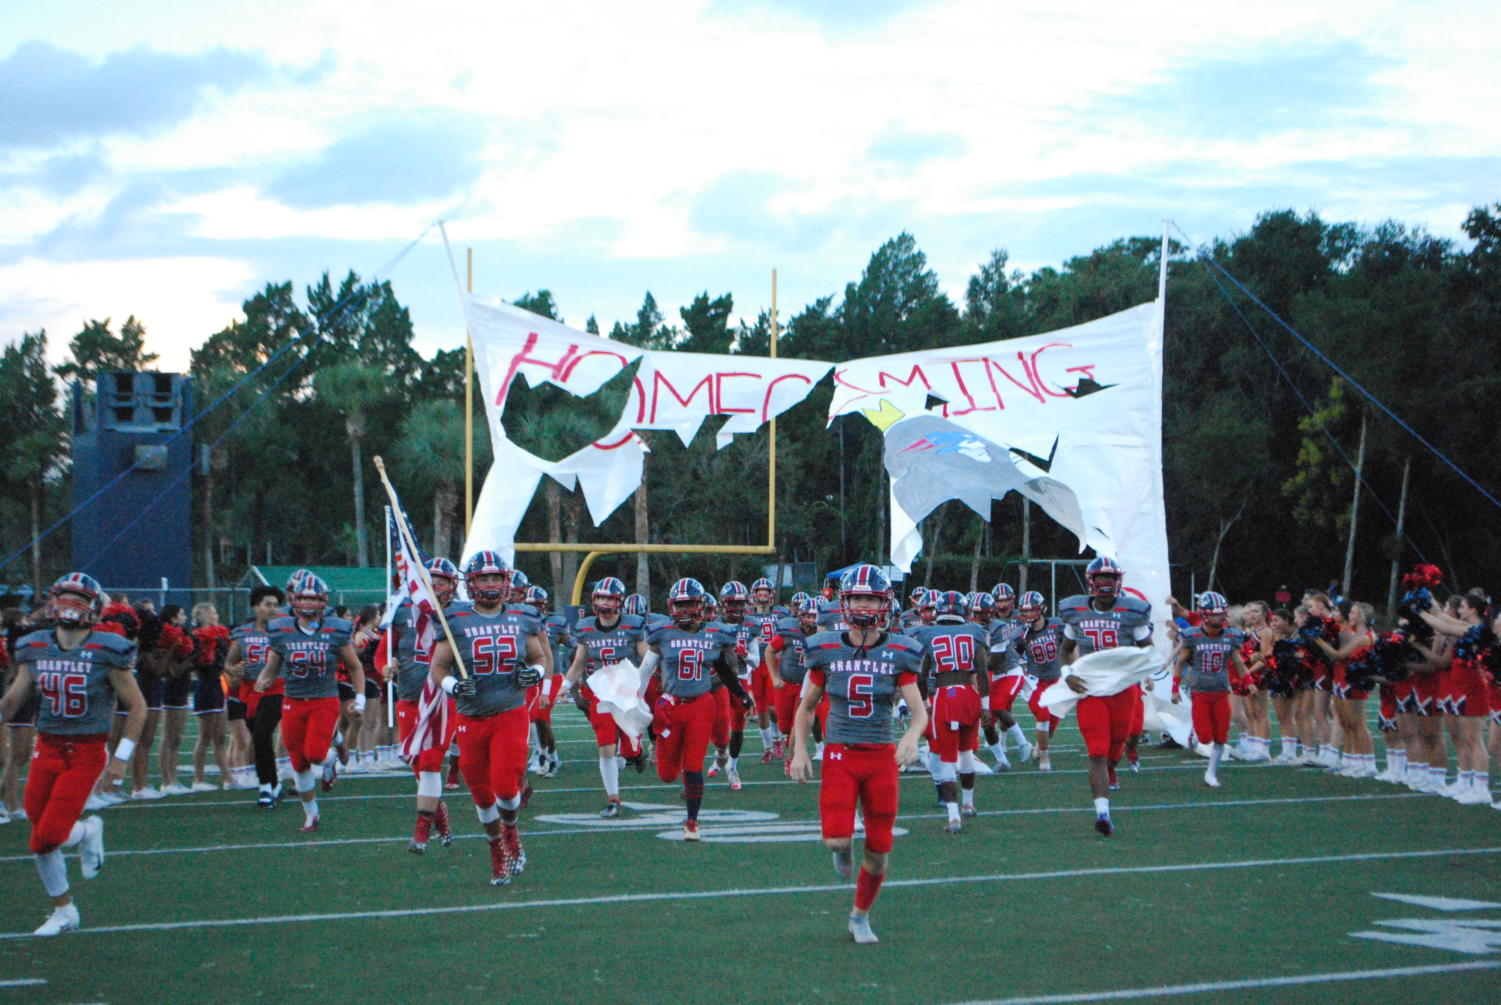 On Friday, September 21st, the varsity football team charges through the banner to start the game. The Patriots won the game, with a final score of  35-28